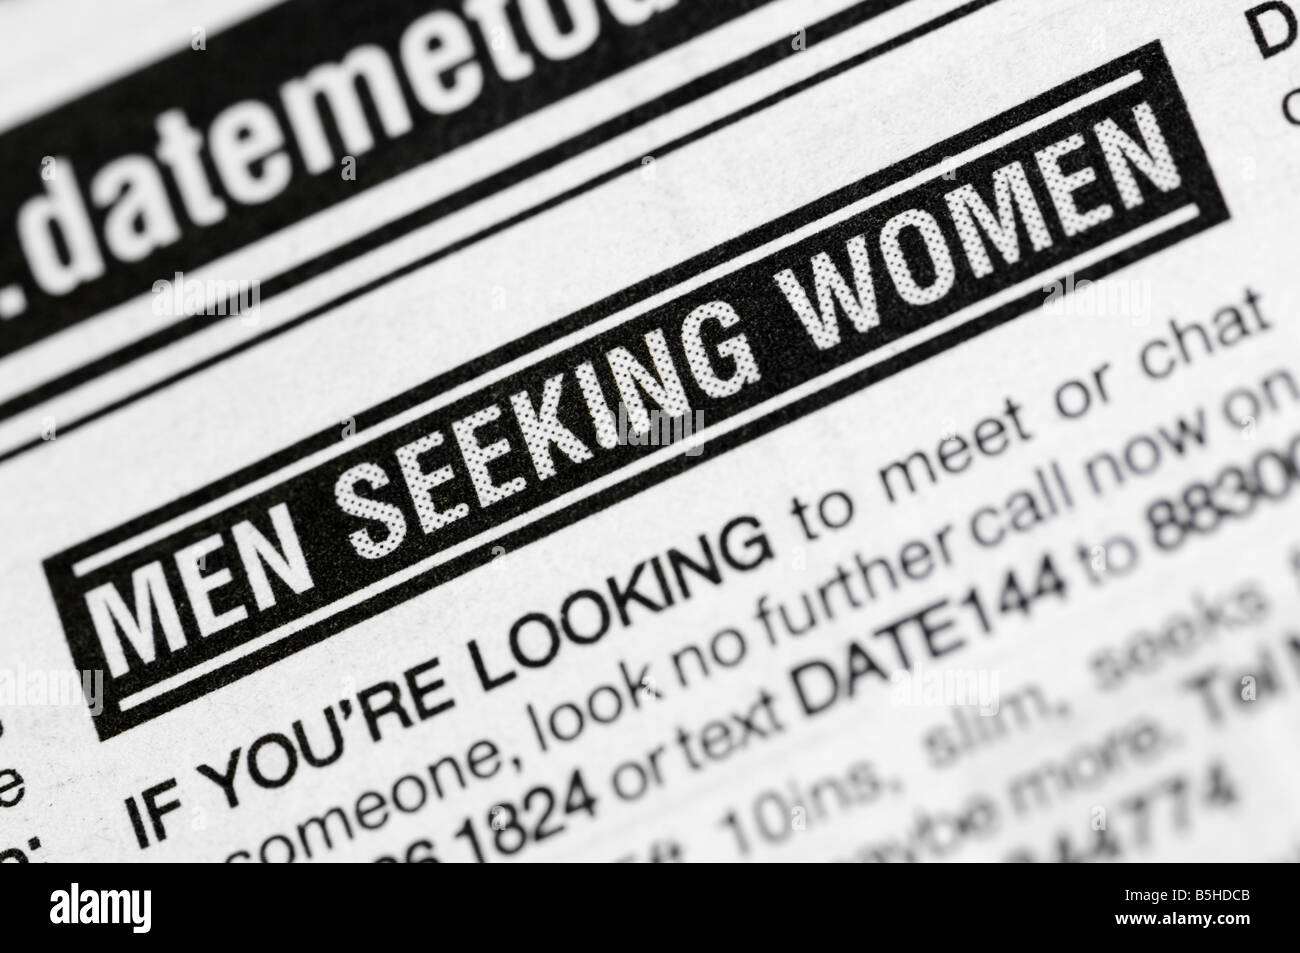 Local women seeking men ads